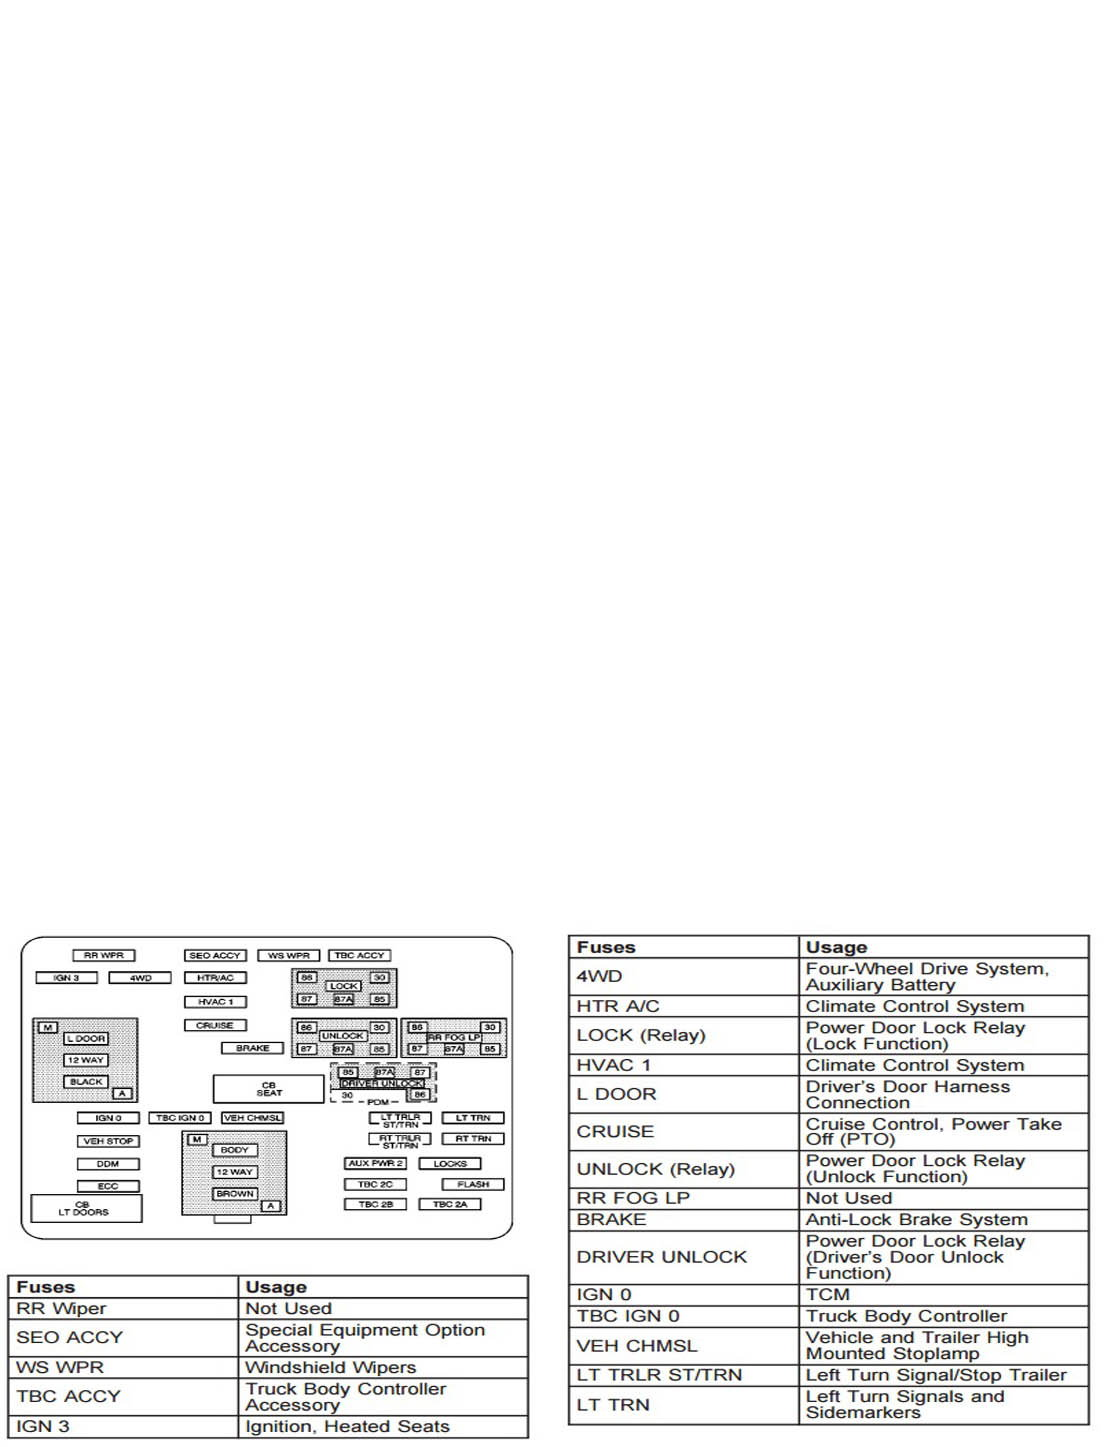 Fuse Diagram For 1998 Astro Van Wiring Library 1994 Instrument Panel Box And Application